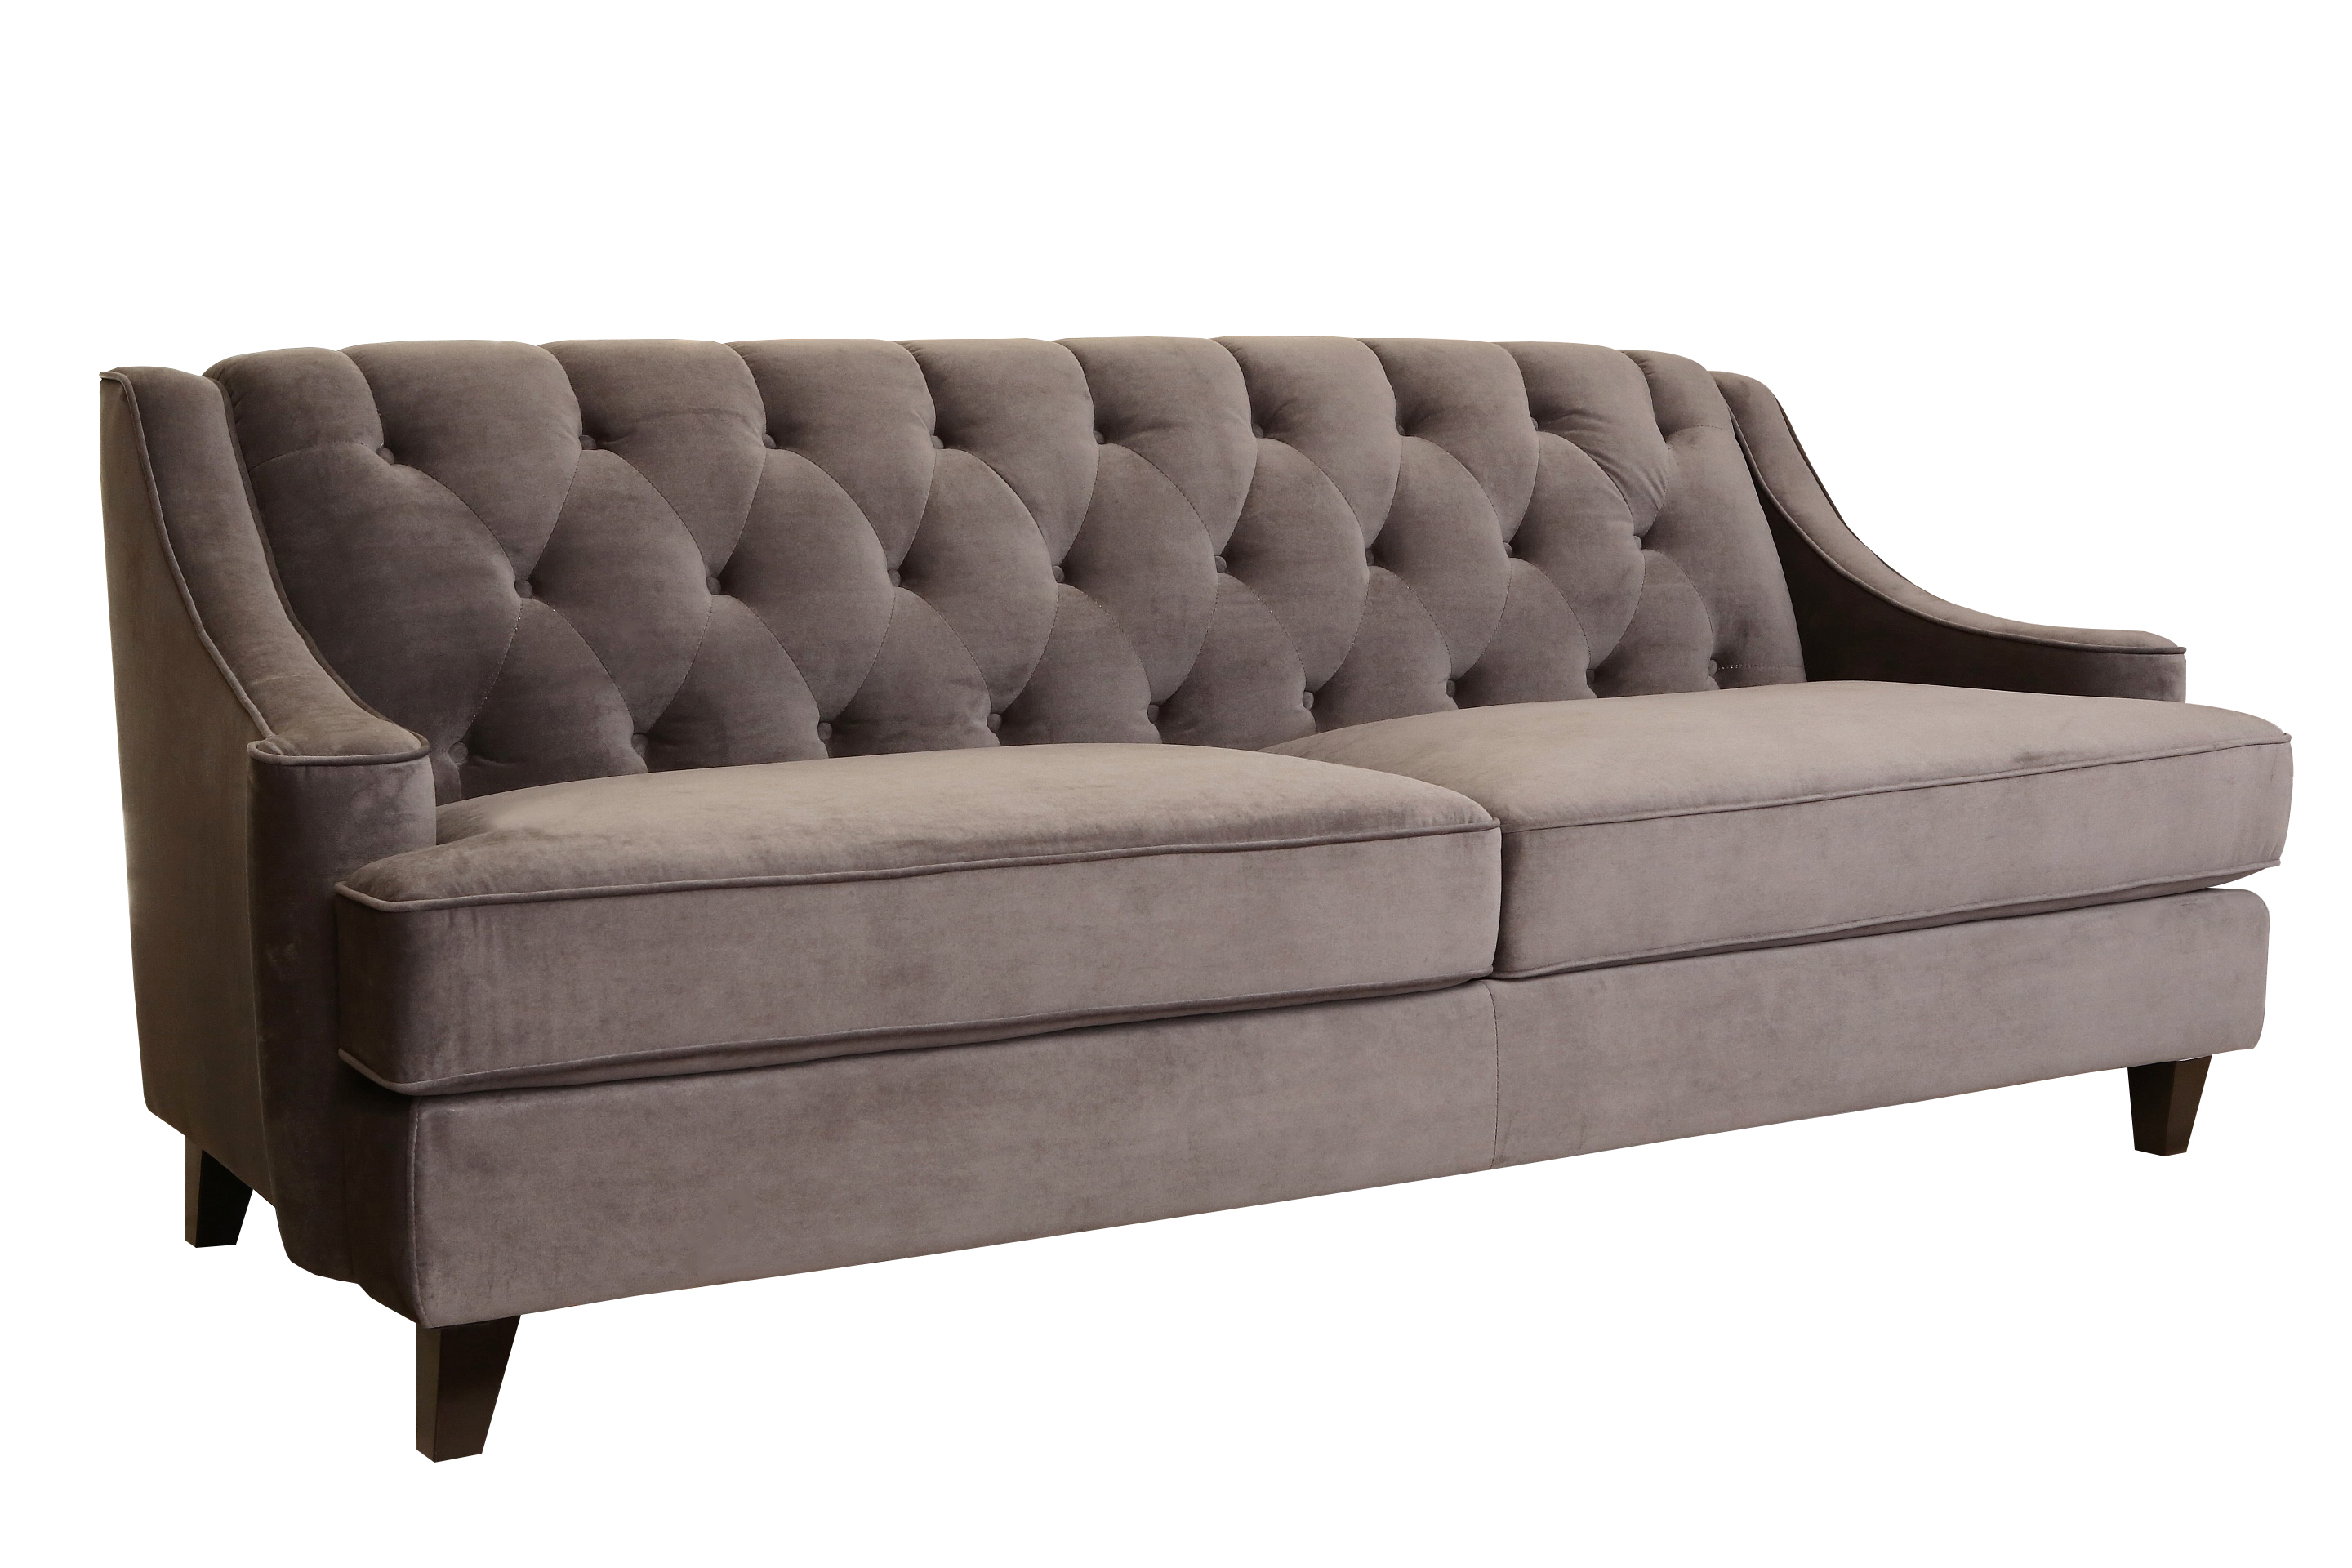 velvet grey tufted sofa bernhardt finley reviews devon claire peyton fabric walmart com